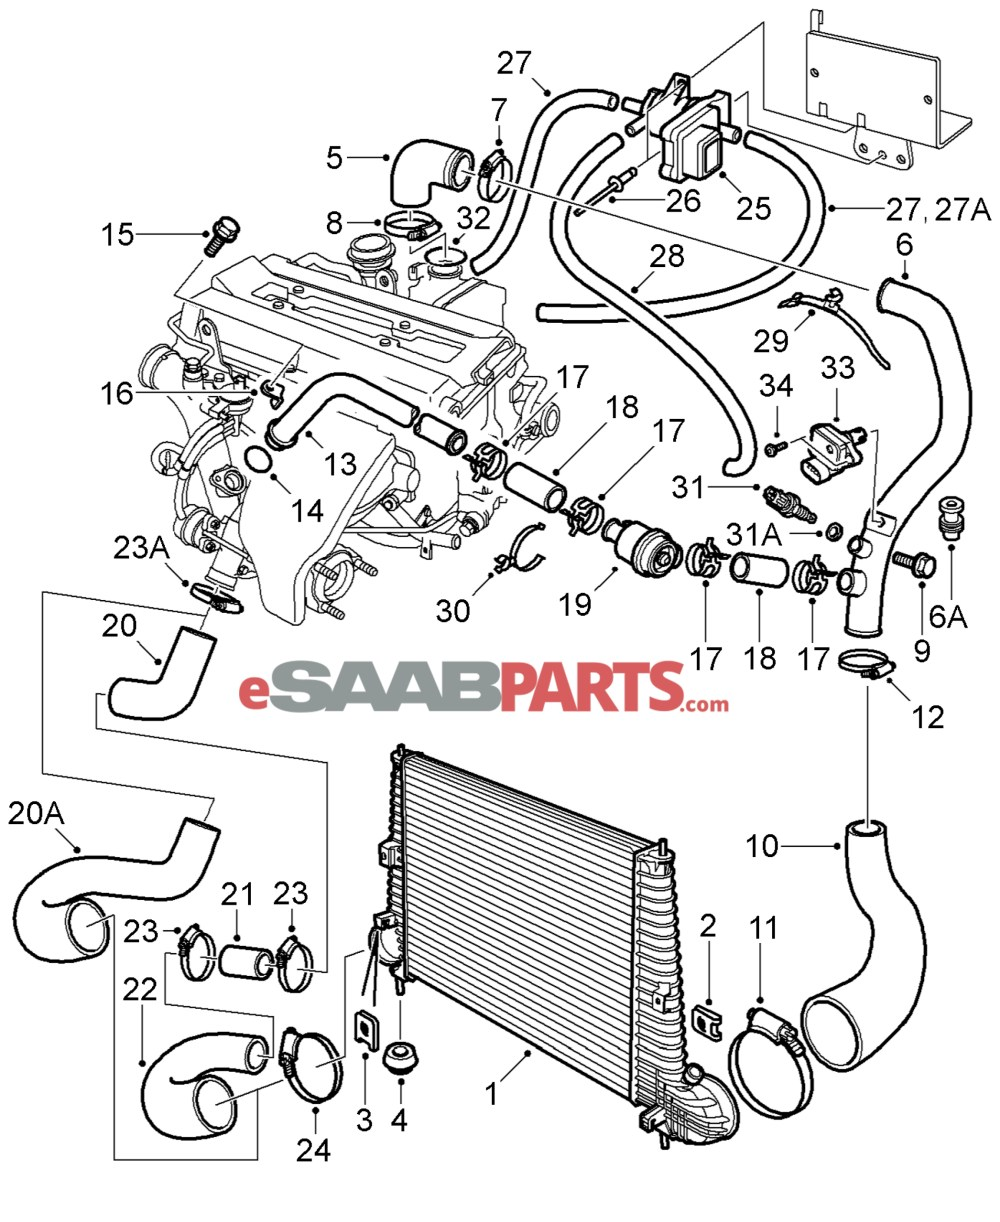 medium resolution of 2002 saab 9 5 2 3 engine diagram